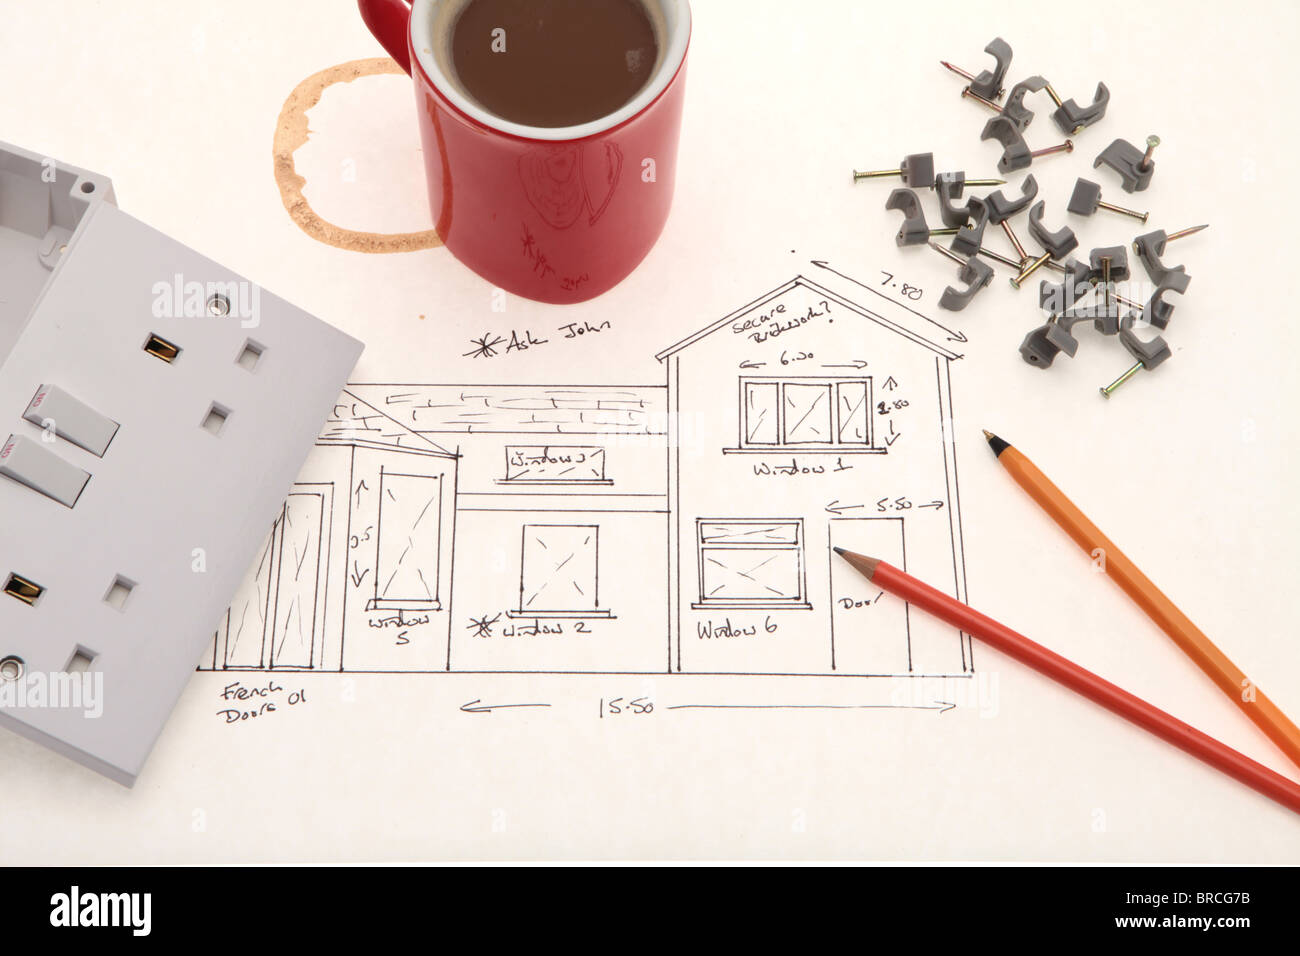 A electricians rough sketch blueprint uk electrical socket outlet a electricians rough sketch blueprint uk electrical socket outlet and a mug of coffee malvernweather Gallery